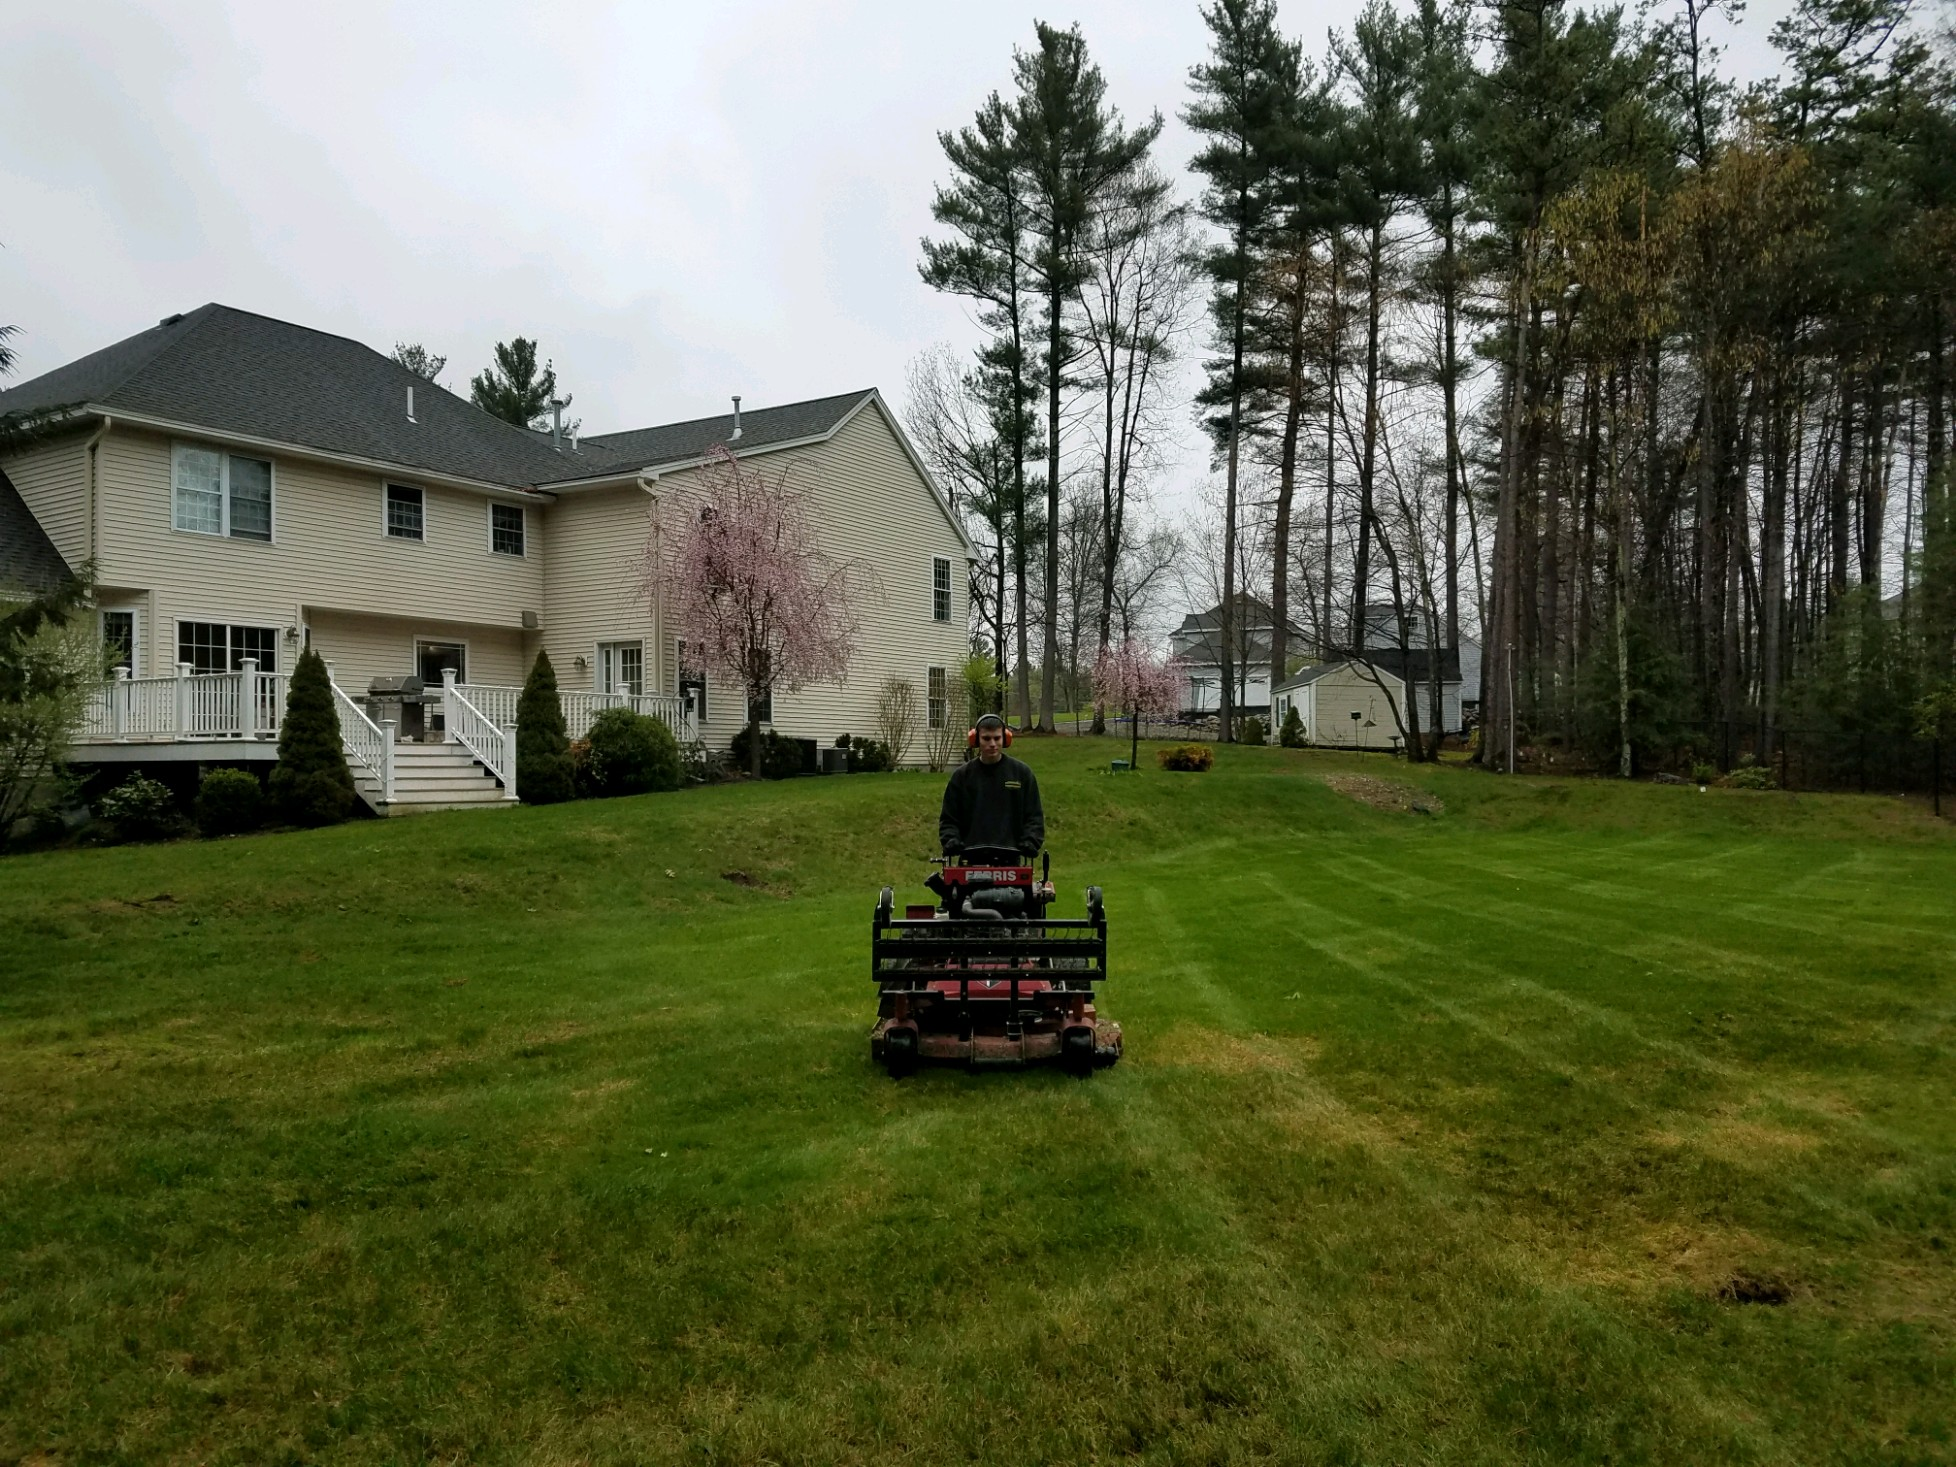 20190502 mowing